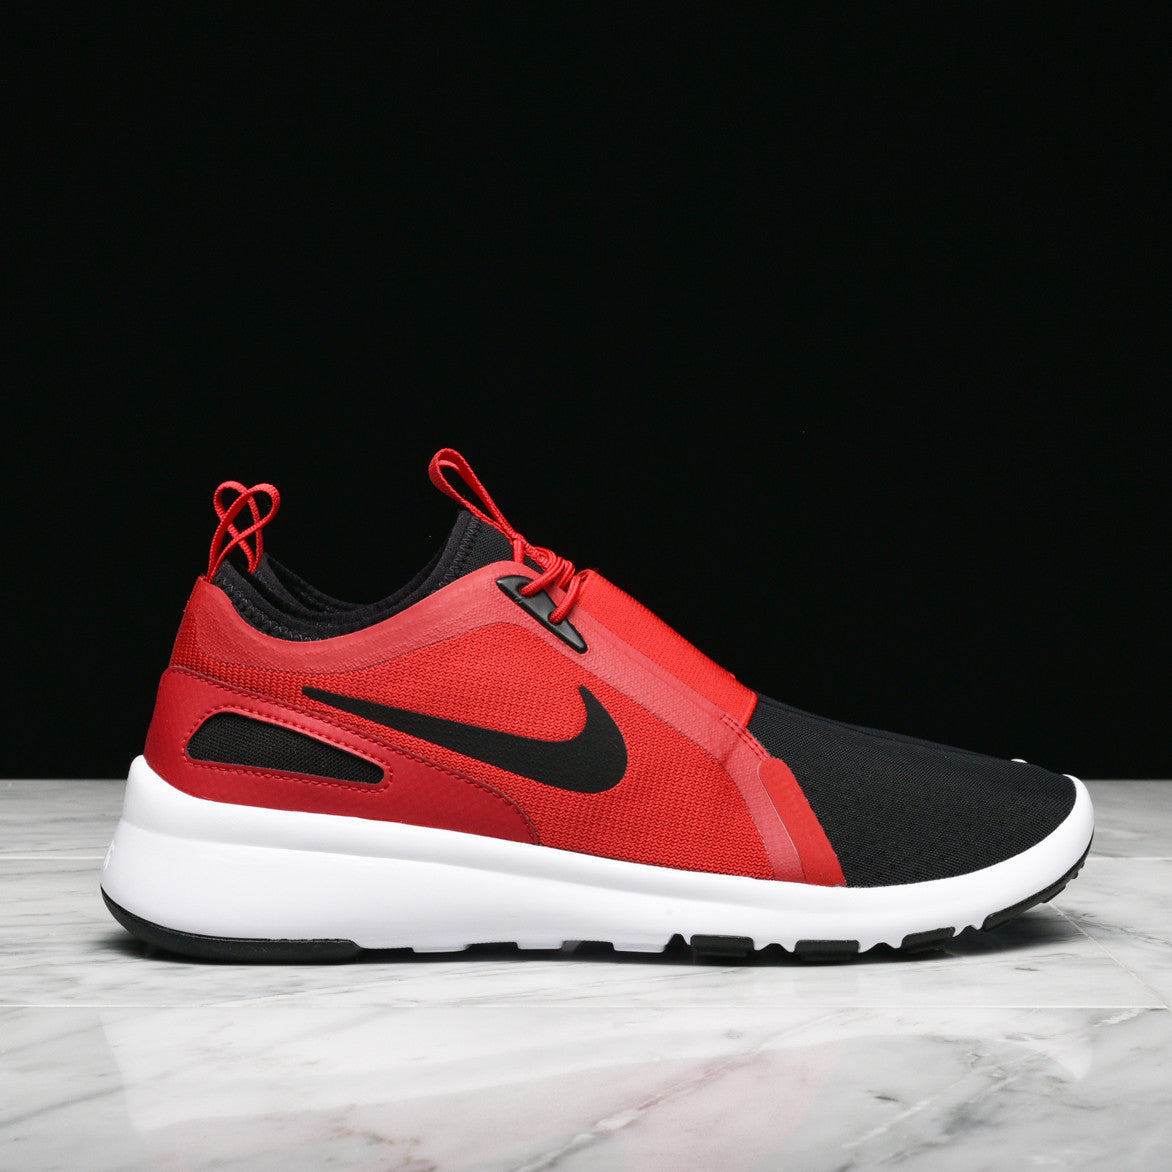 CURRENT SLIP ON - GYM RED / BLACK